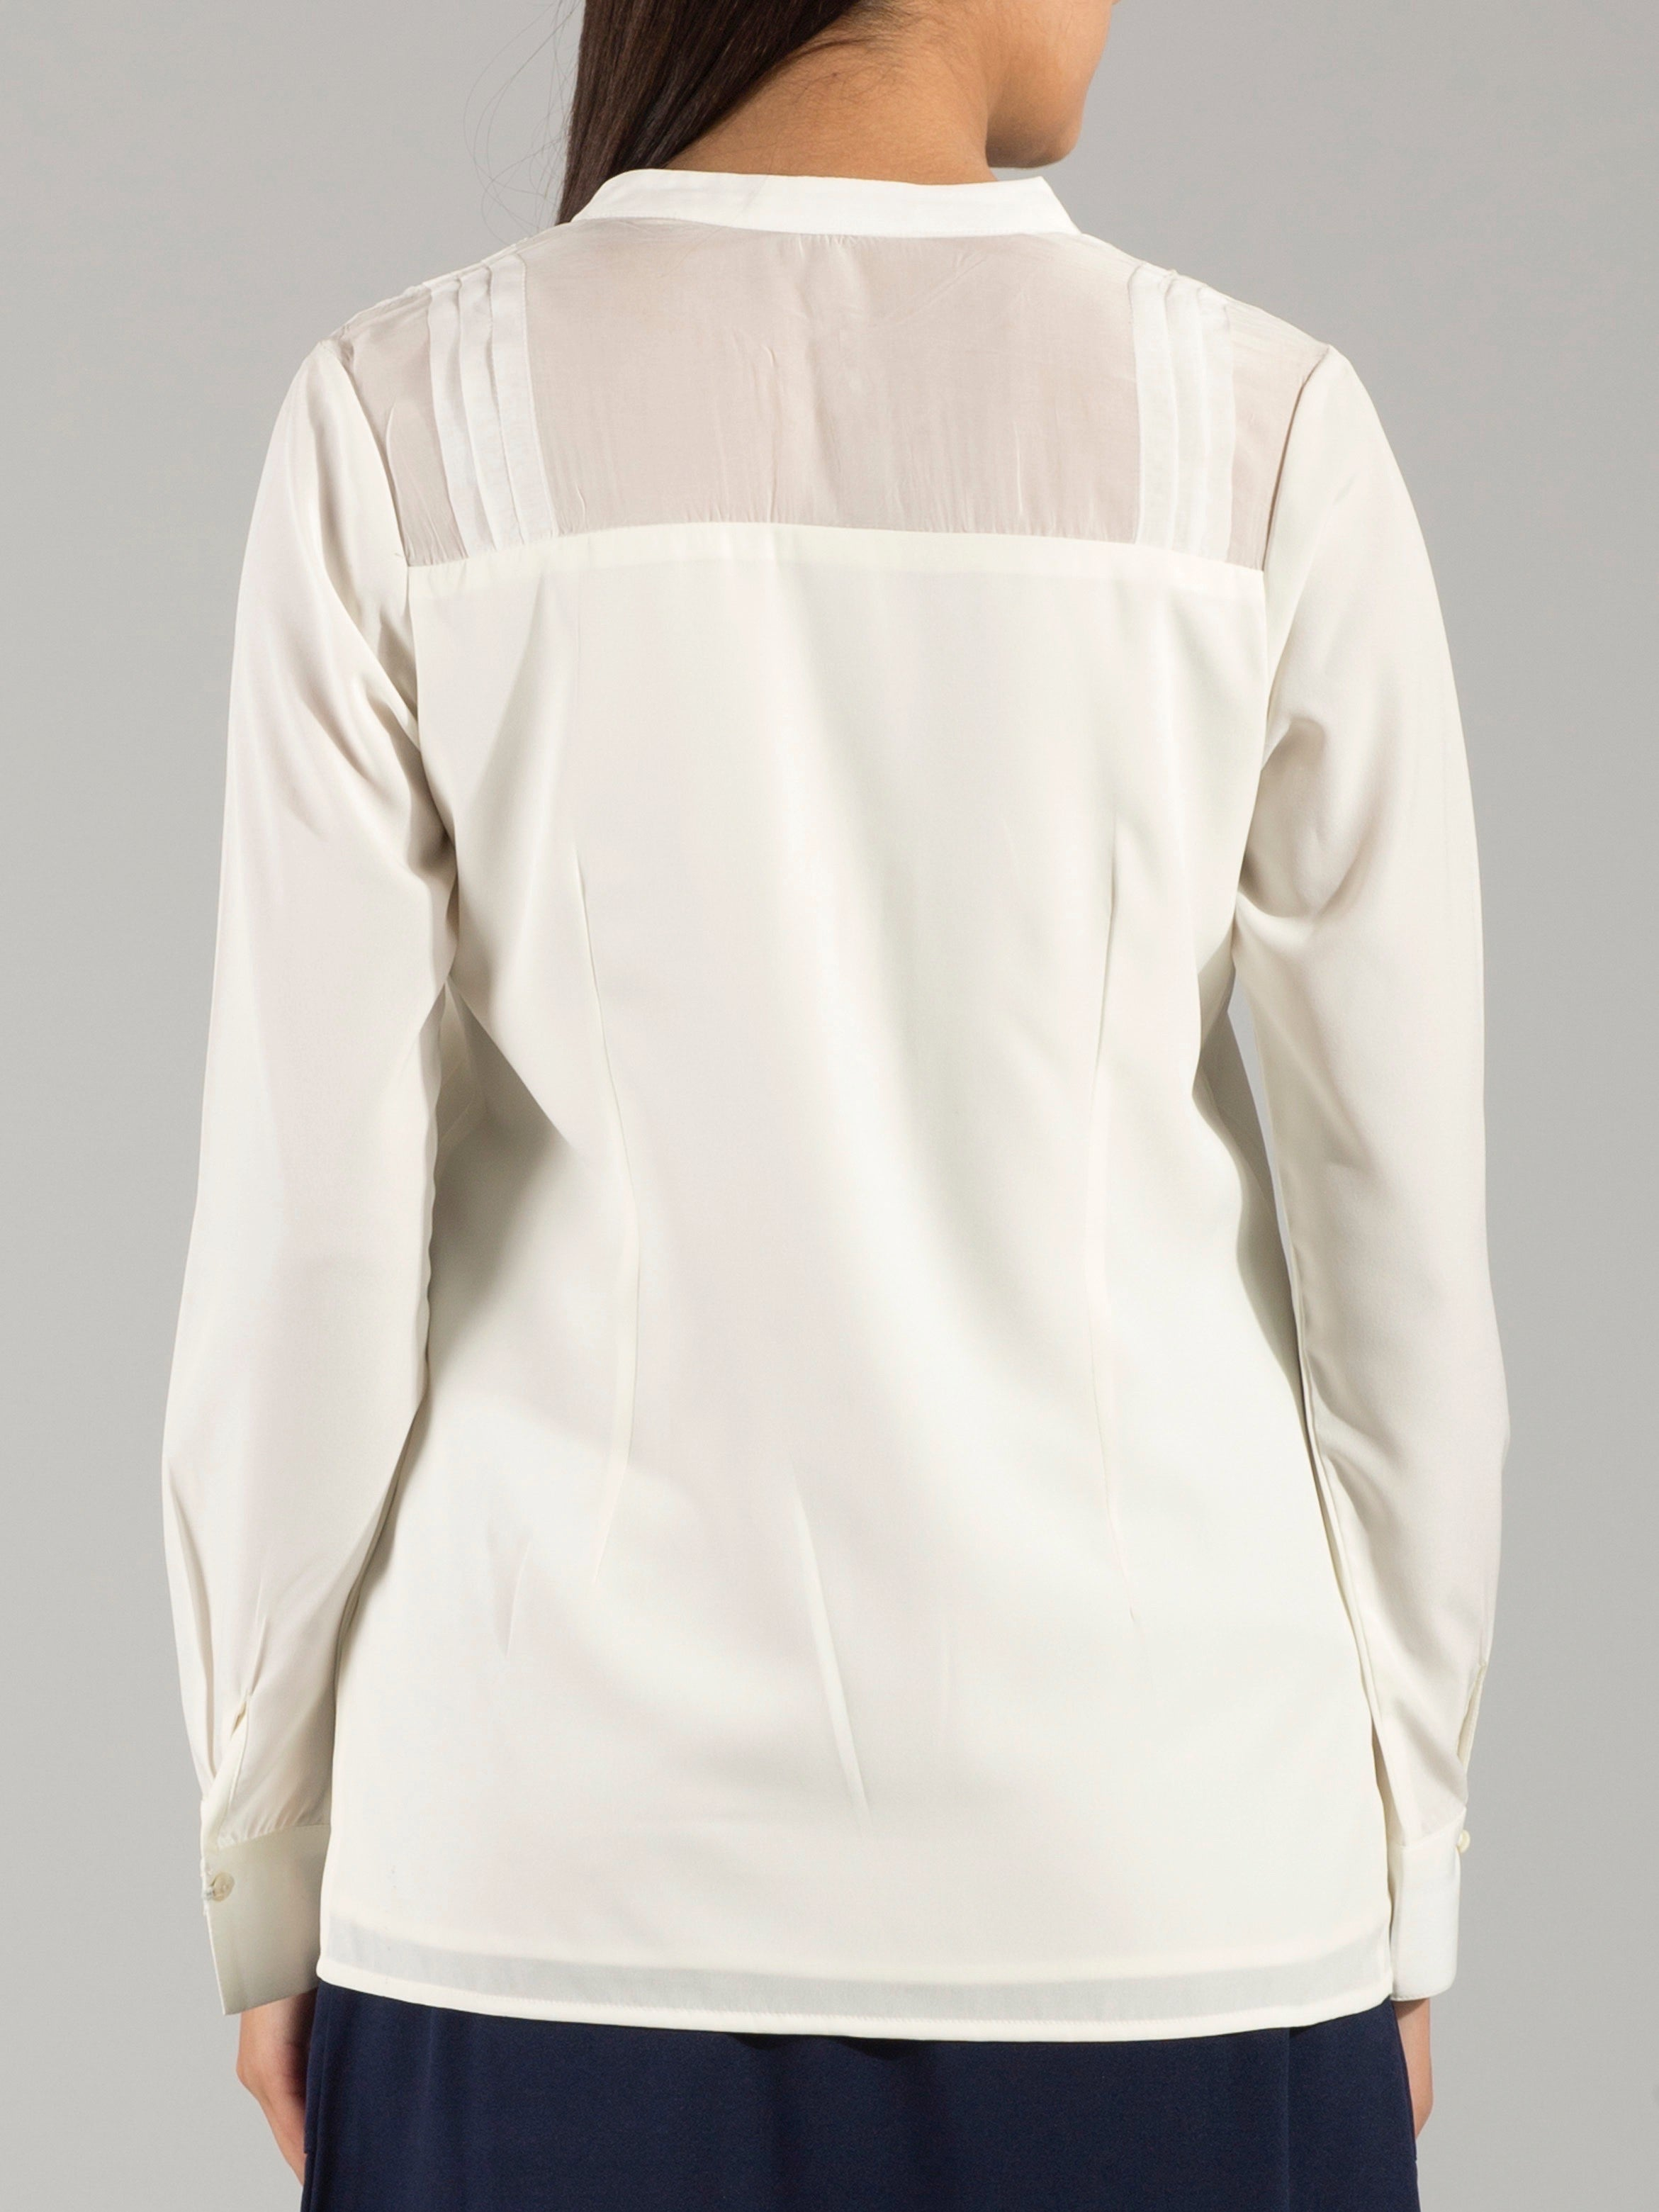 Open Mandarin Collar Pleated Sheer Yoke Top - Off White